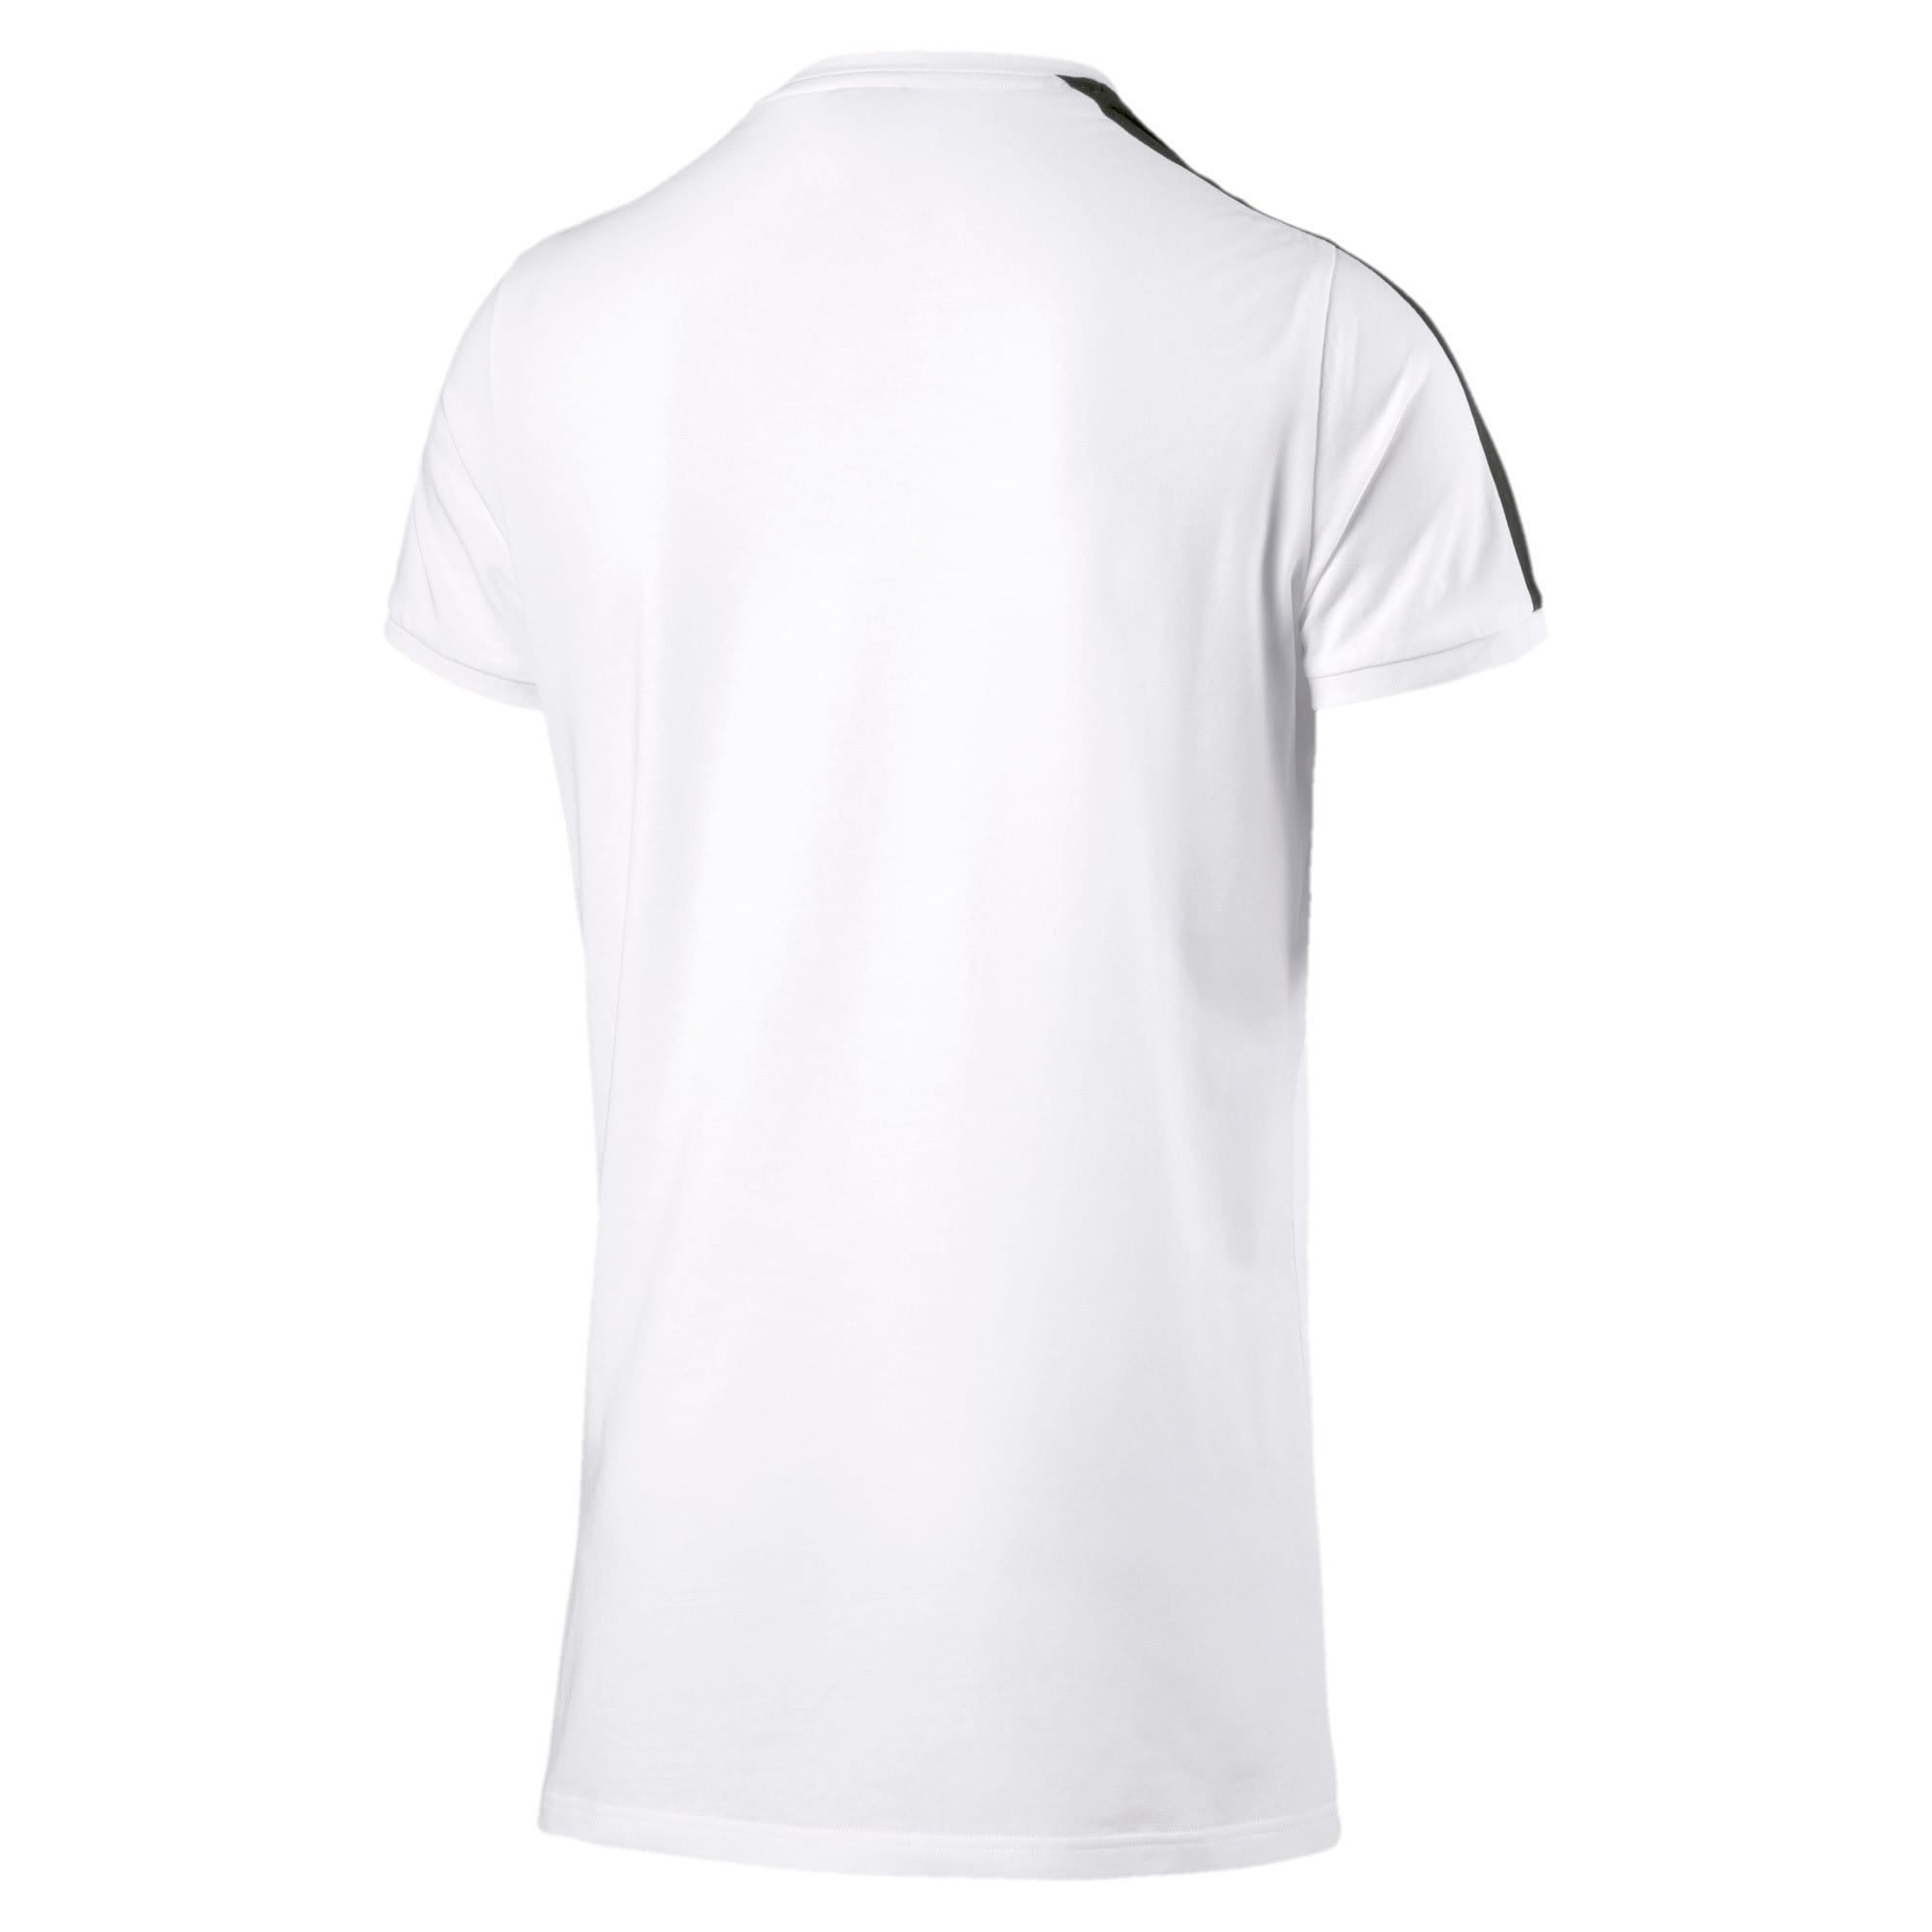 Thumbnail 4 of Classics Herren Slim T7 T-Shirt, Puma White, medium